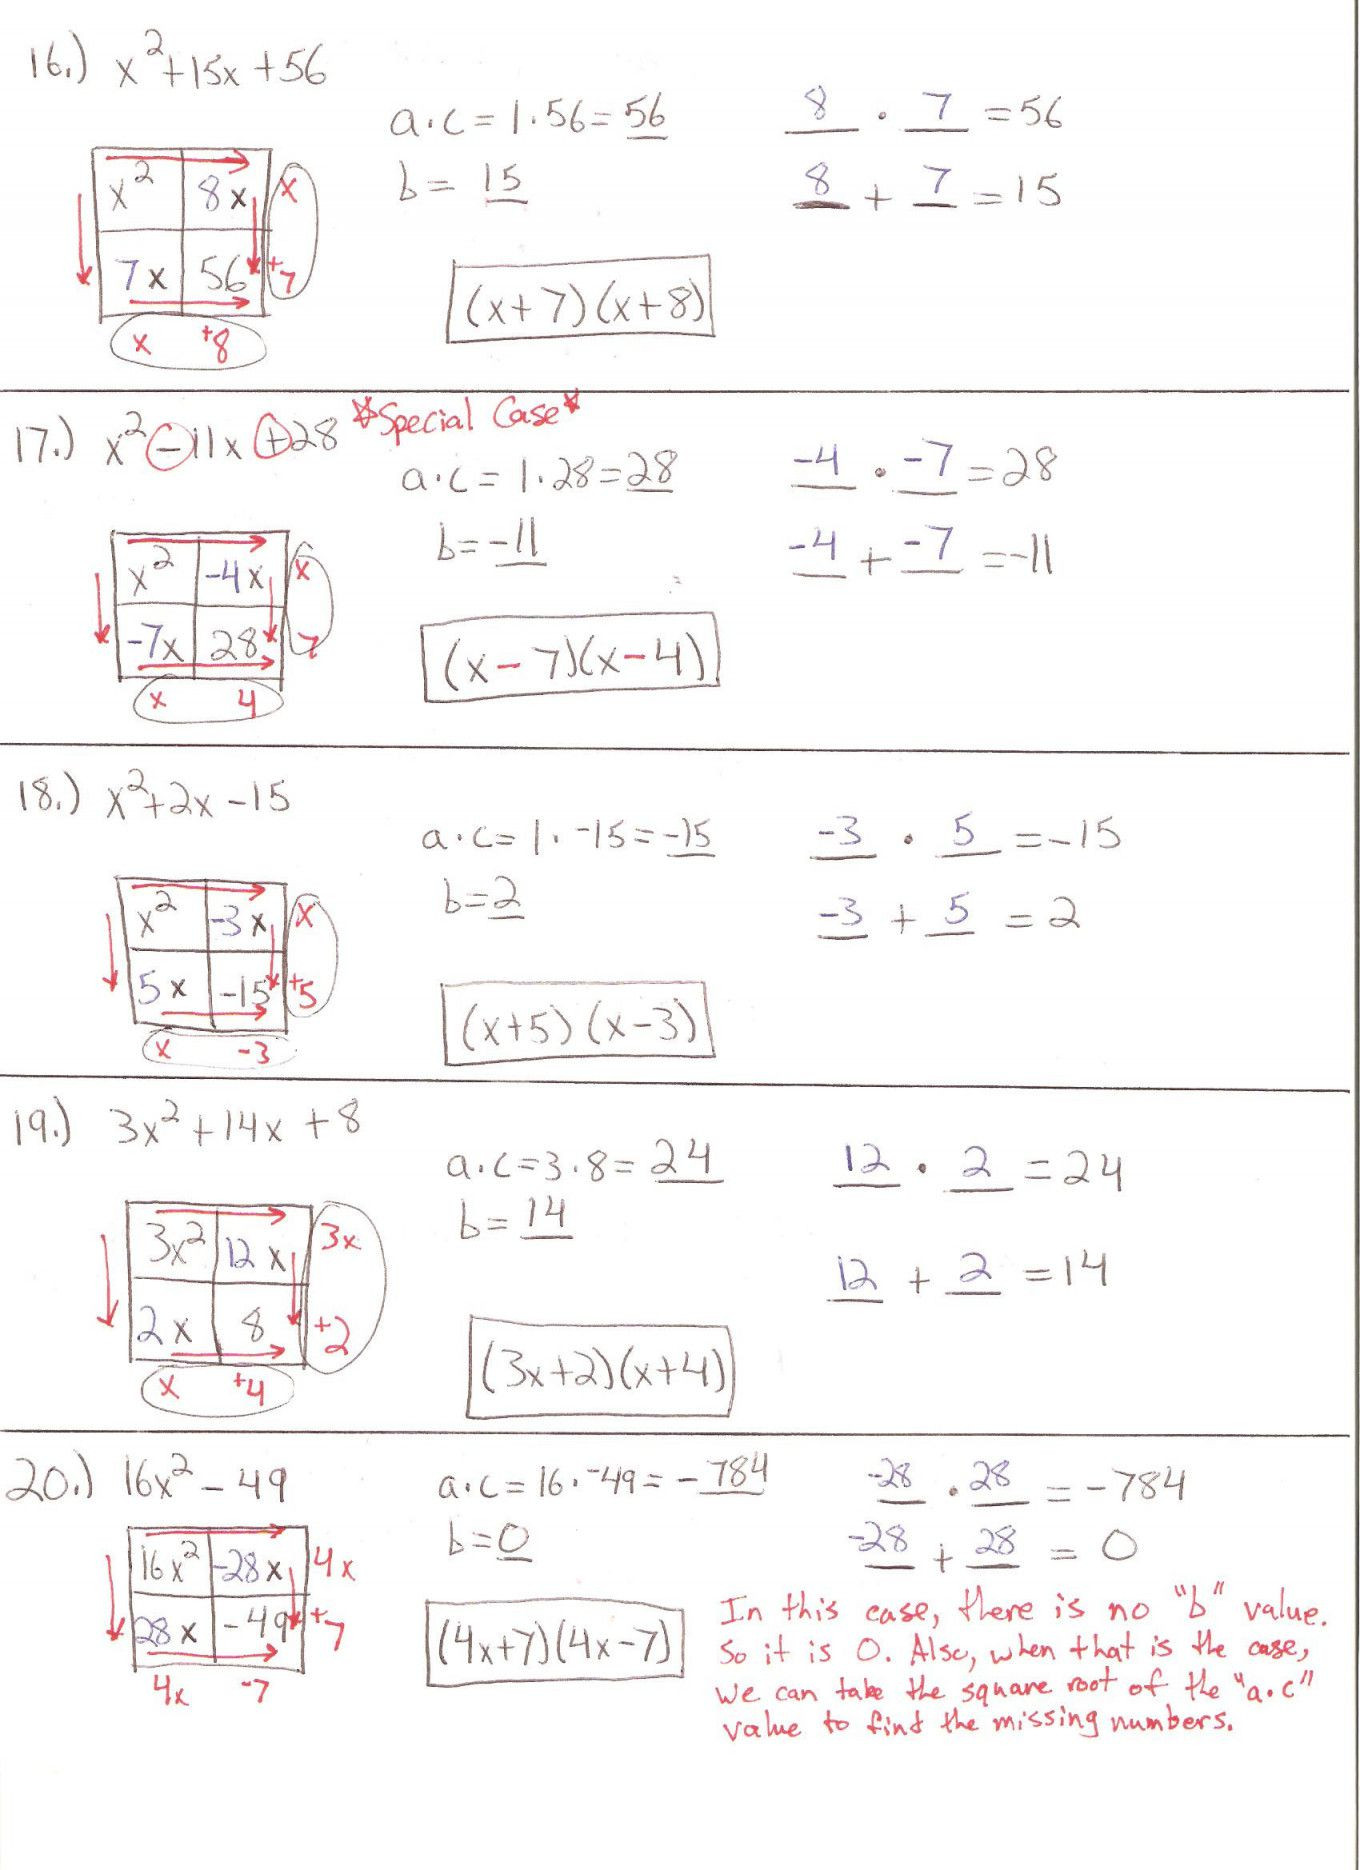 Factoring Polynomials Worksheet Answers Factoring Polynomials Worksheet Maze